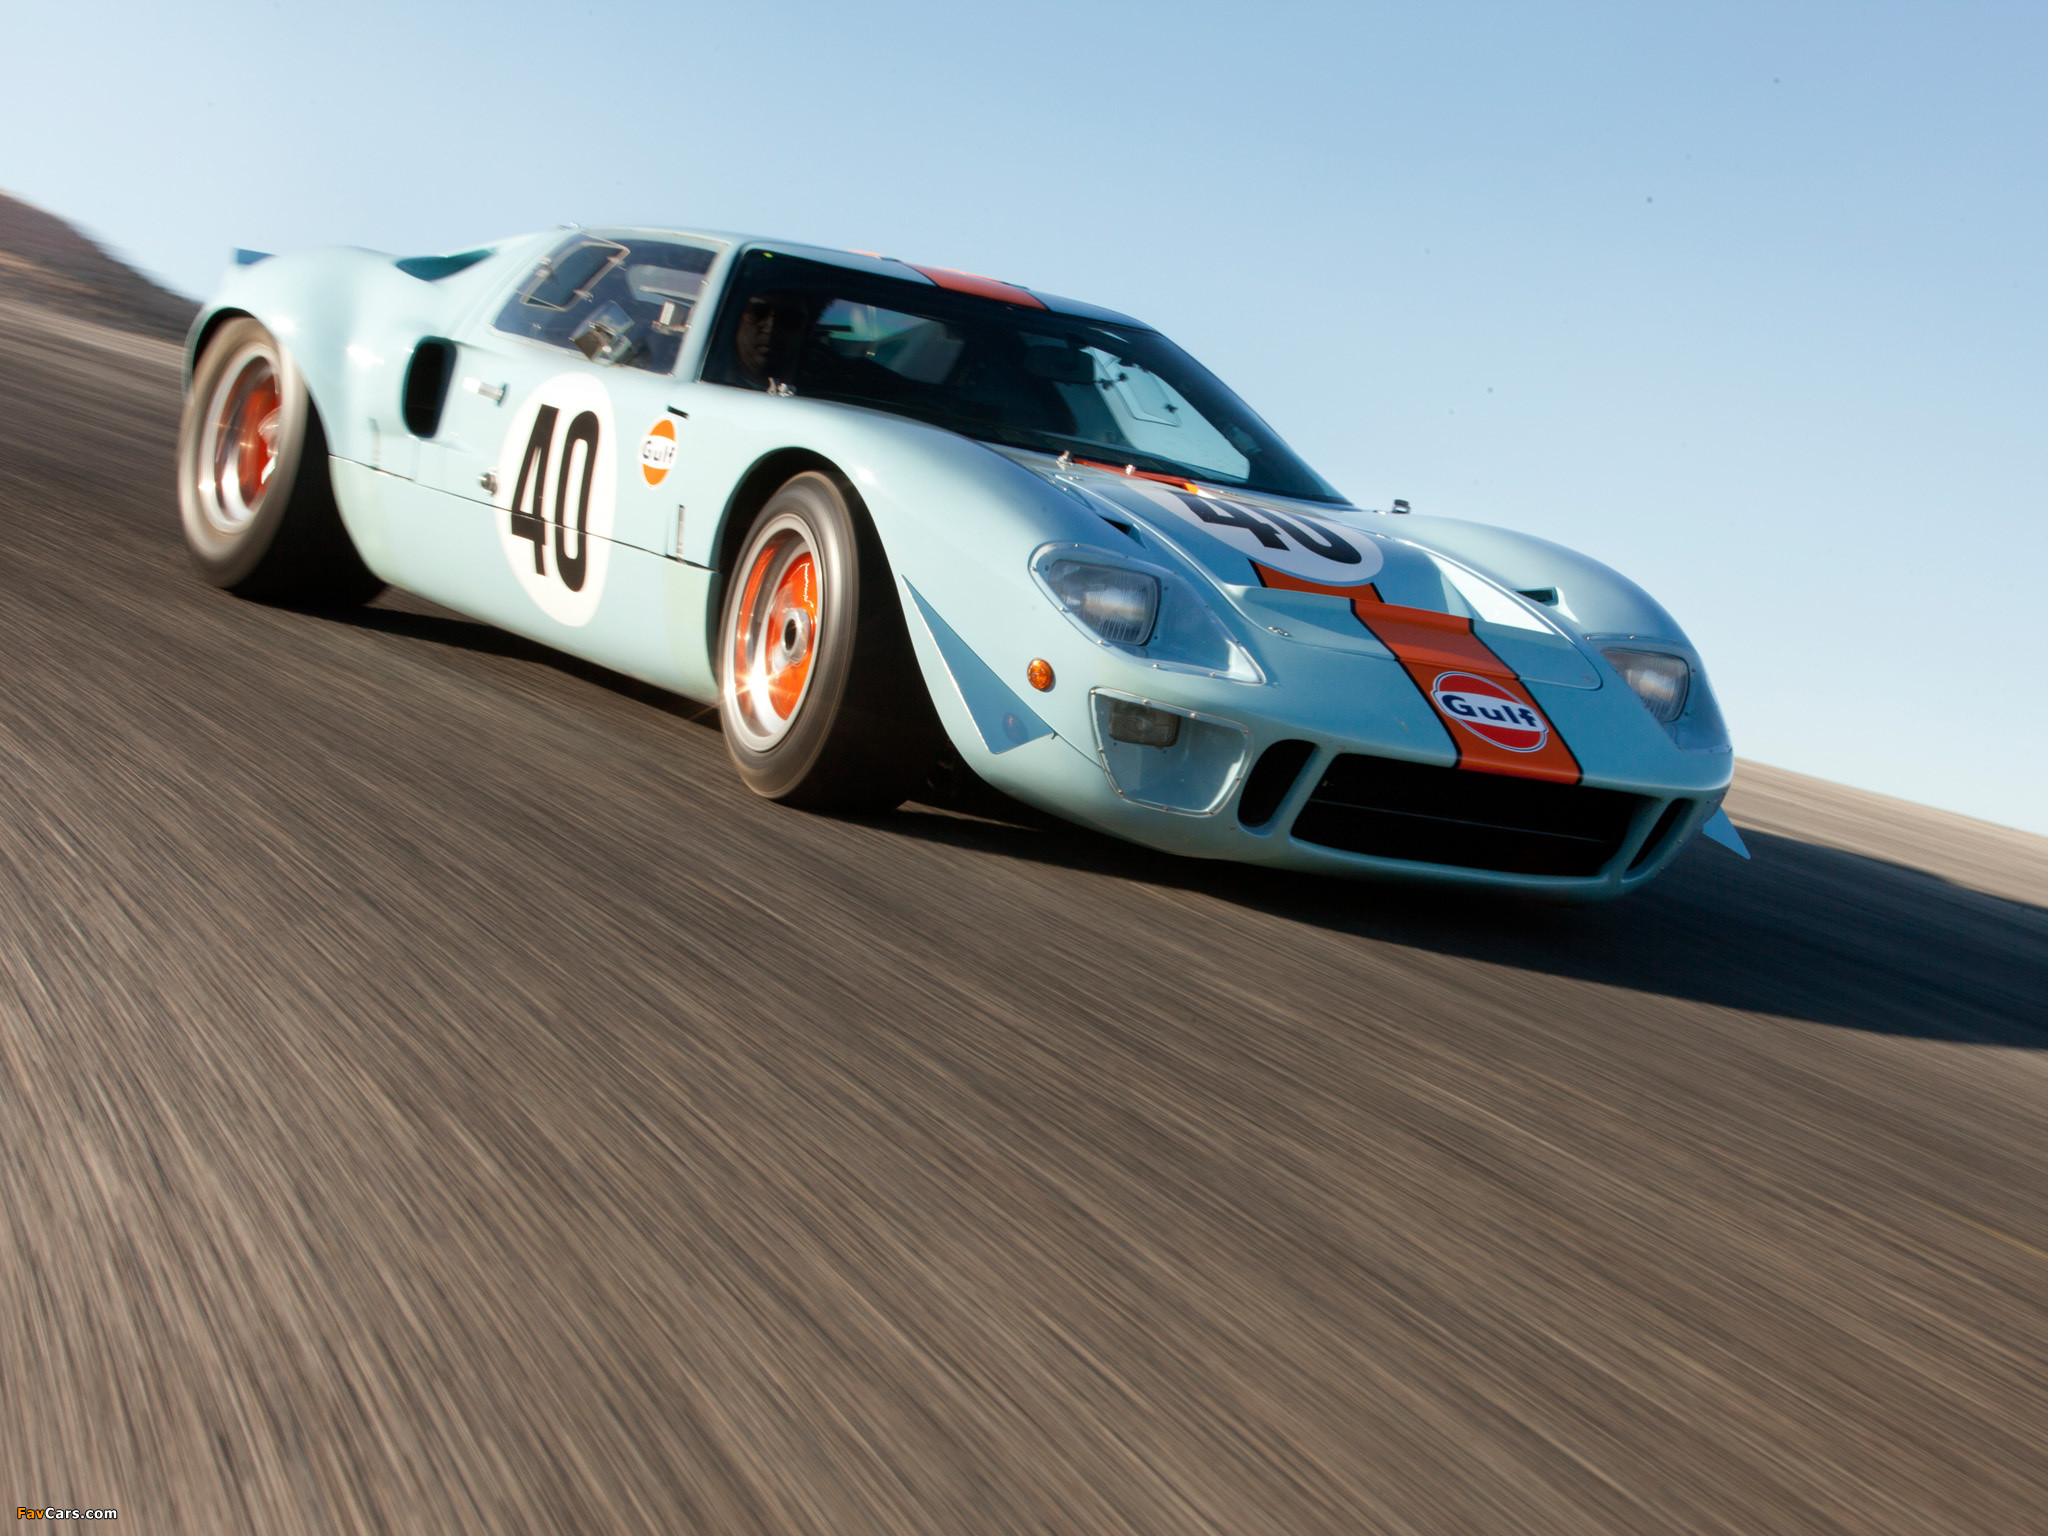 Res: 2048x1536, Ford GT40 Gulf Oil Le Mans 1968 wallpapers (2048 x 1536)